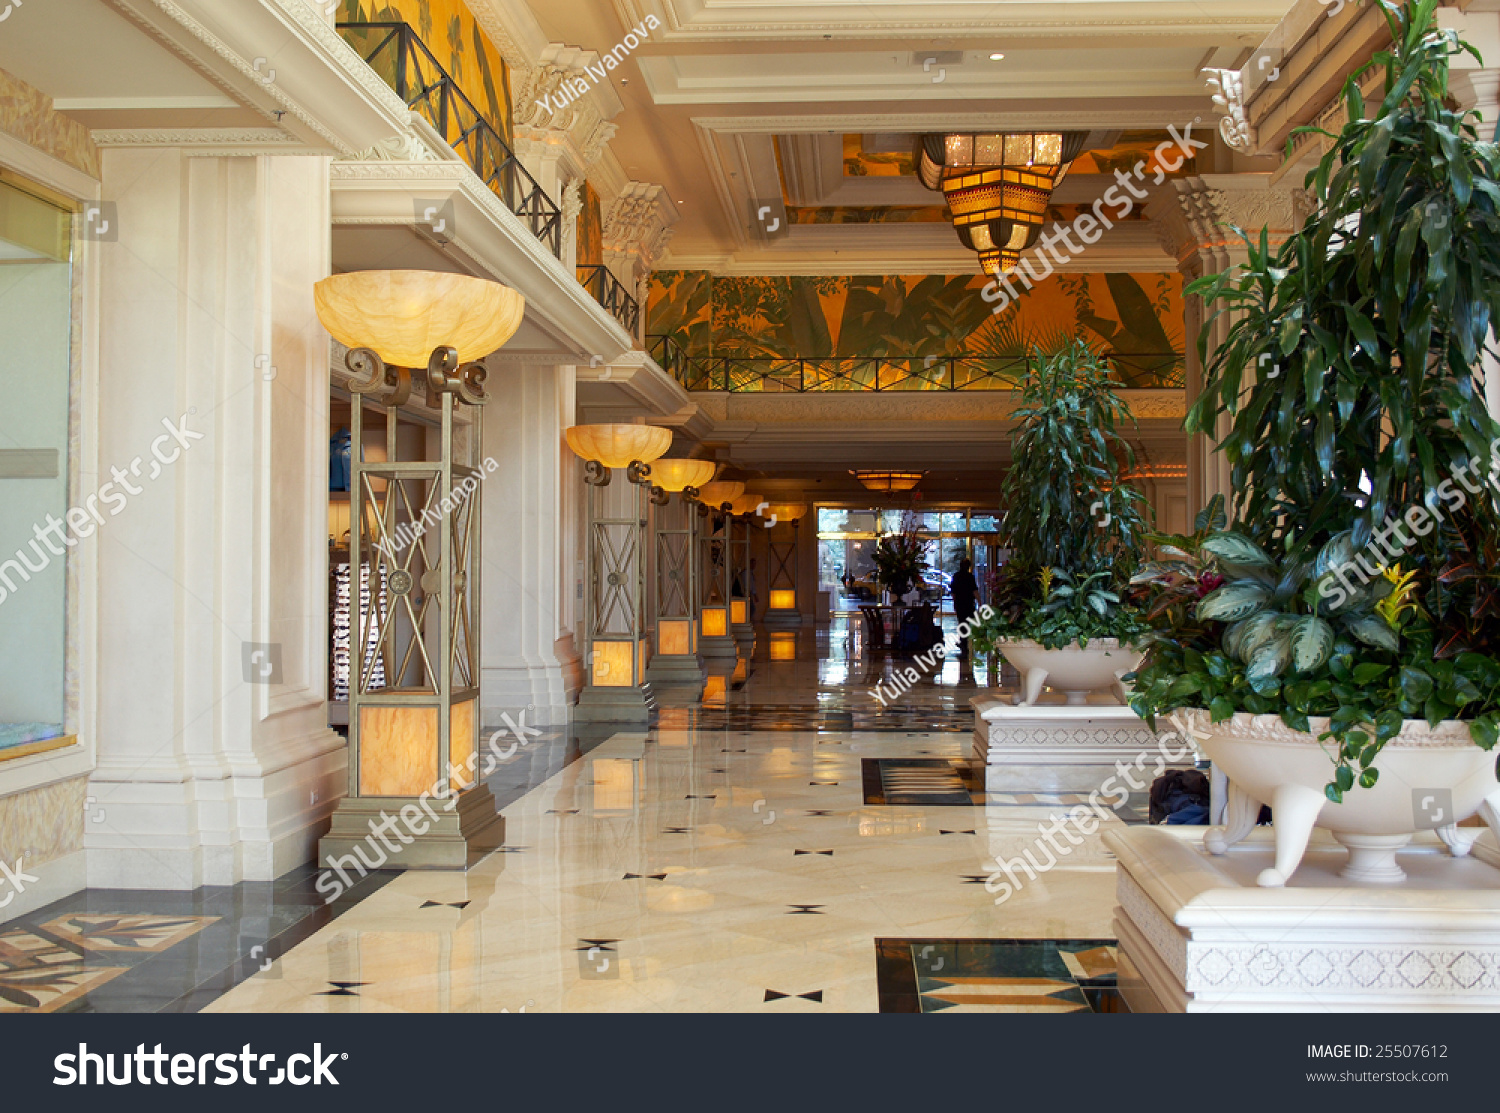 Foyer Hotel : Beautiful big foyer luxury expensive hotel stock photo royalty free